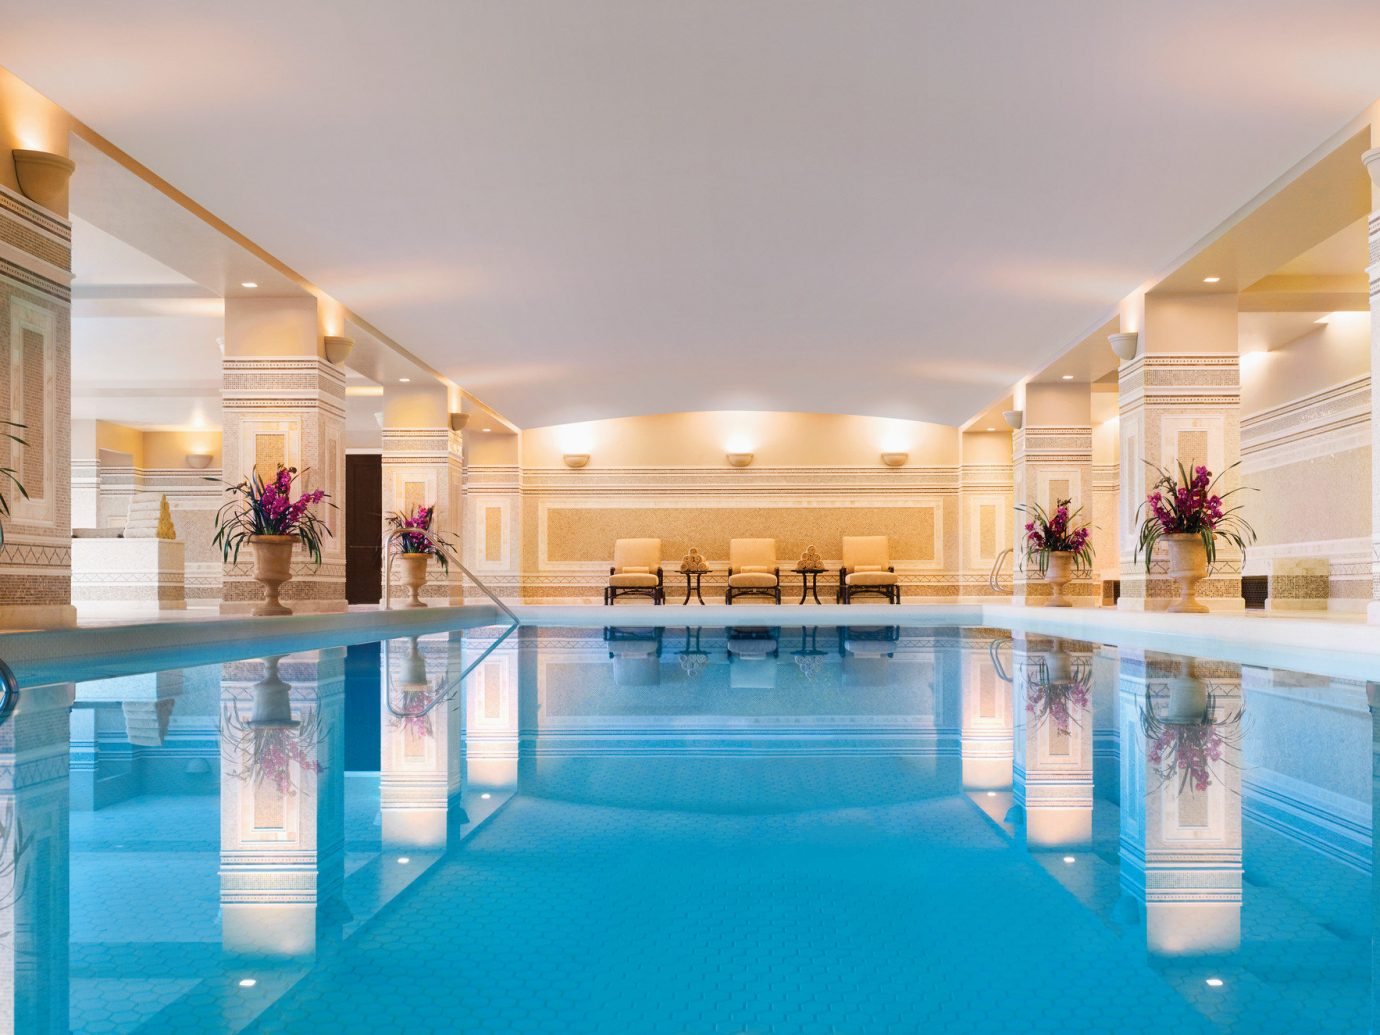 Trip Ideas indoor swimming pool leisure ceiling estate Resort function hall